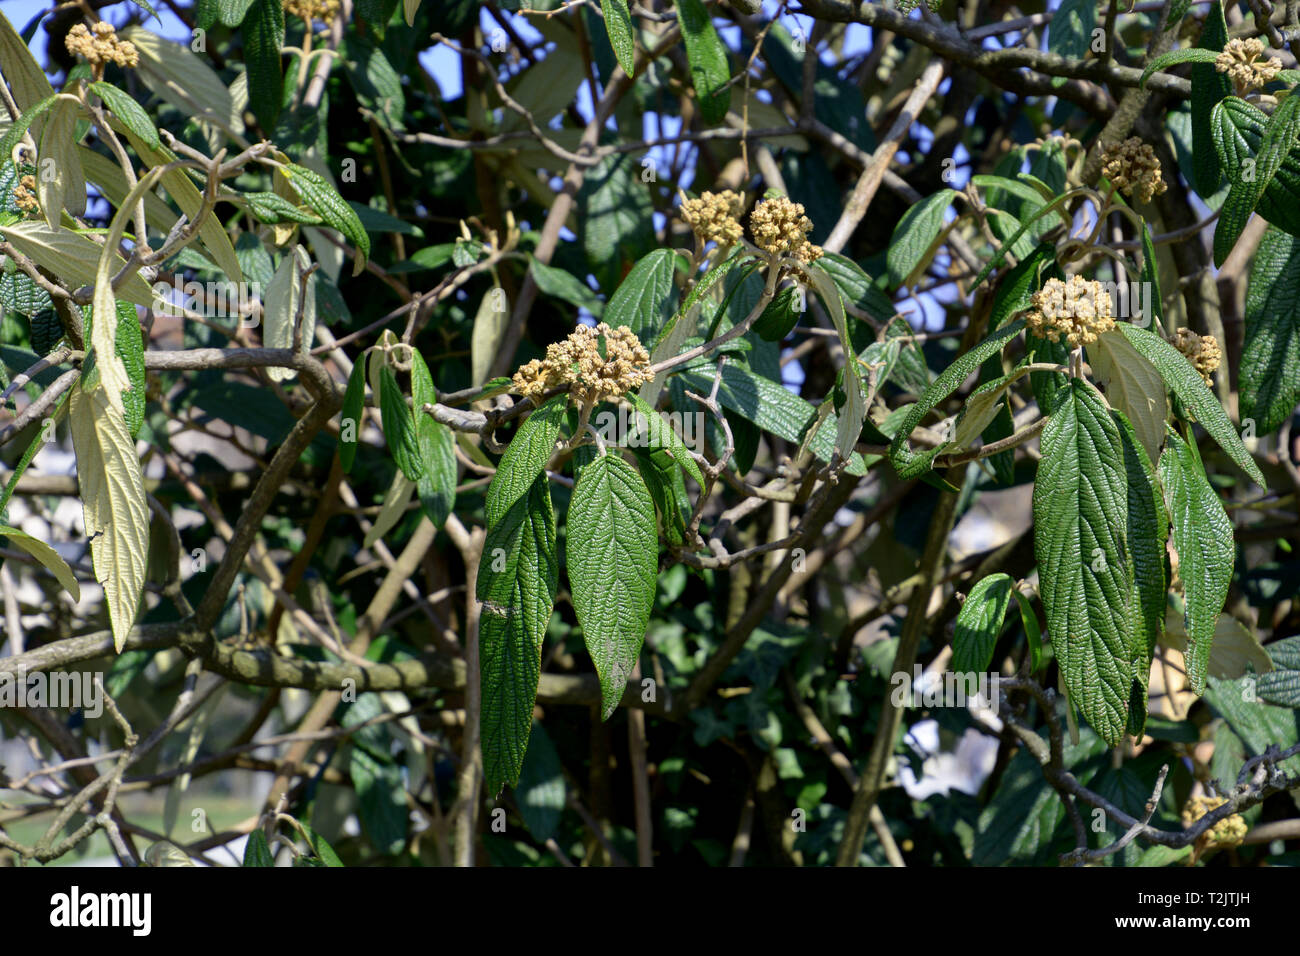 flower buds of viburnum hedge in early spring, viburnum rhytidophyllum shrub also called leatherleaf viburnum a spring season at lake constance - Stock Image